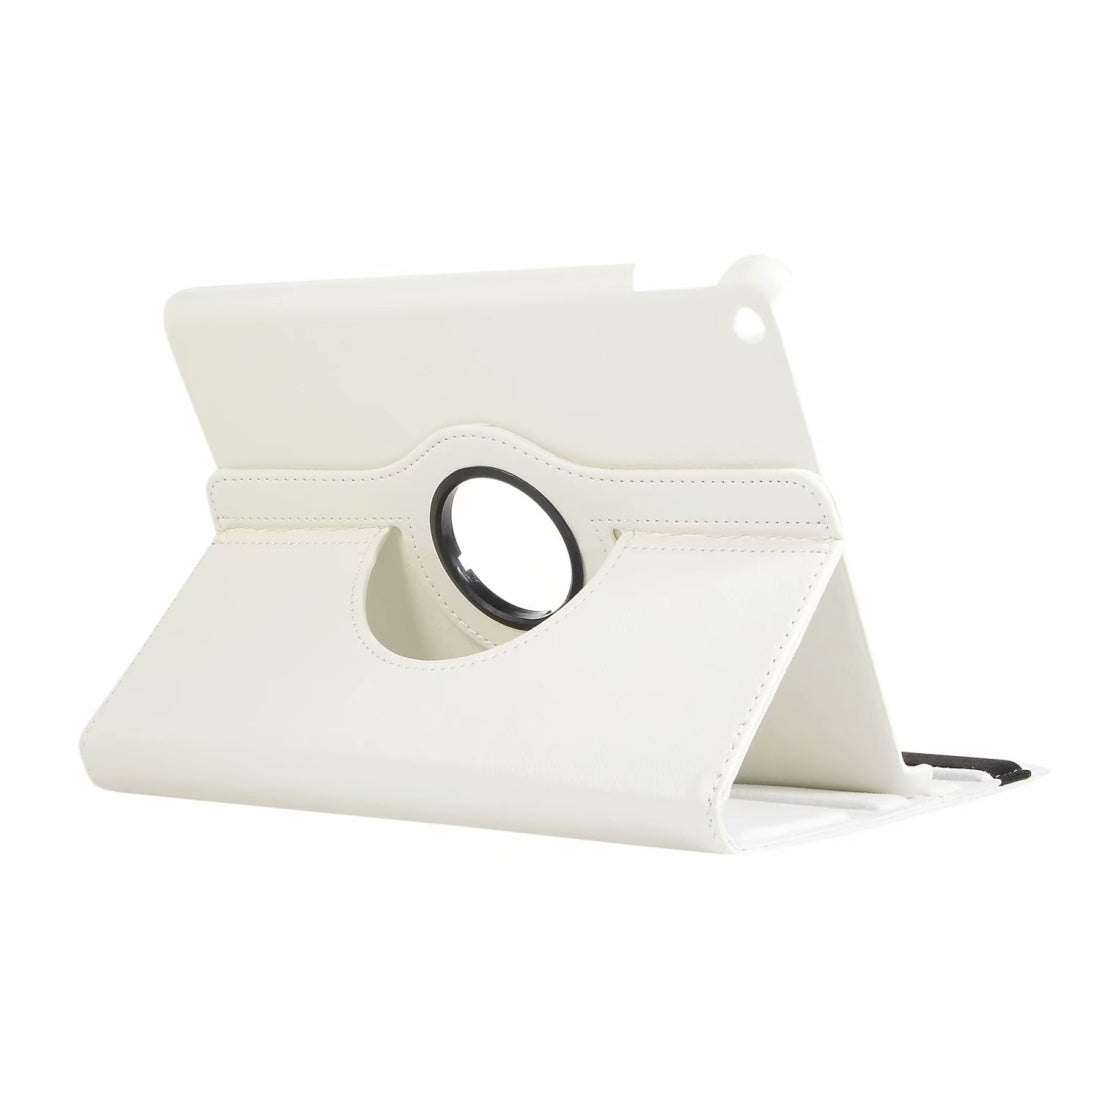 For iPad 10.2 / Air 2019 10.5 Litchi Texture Horizontal Flip 360 Degrees Rotation Leather Case(White)